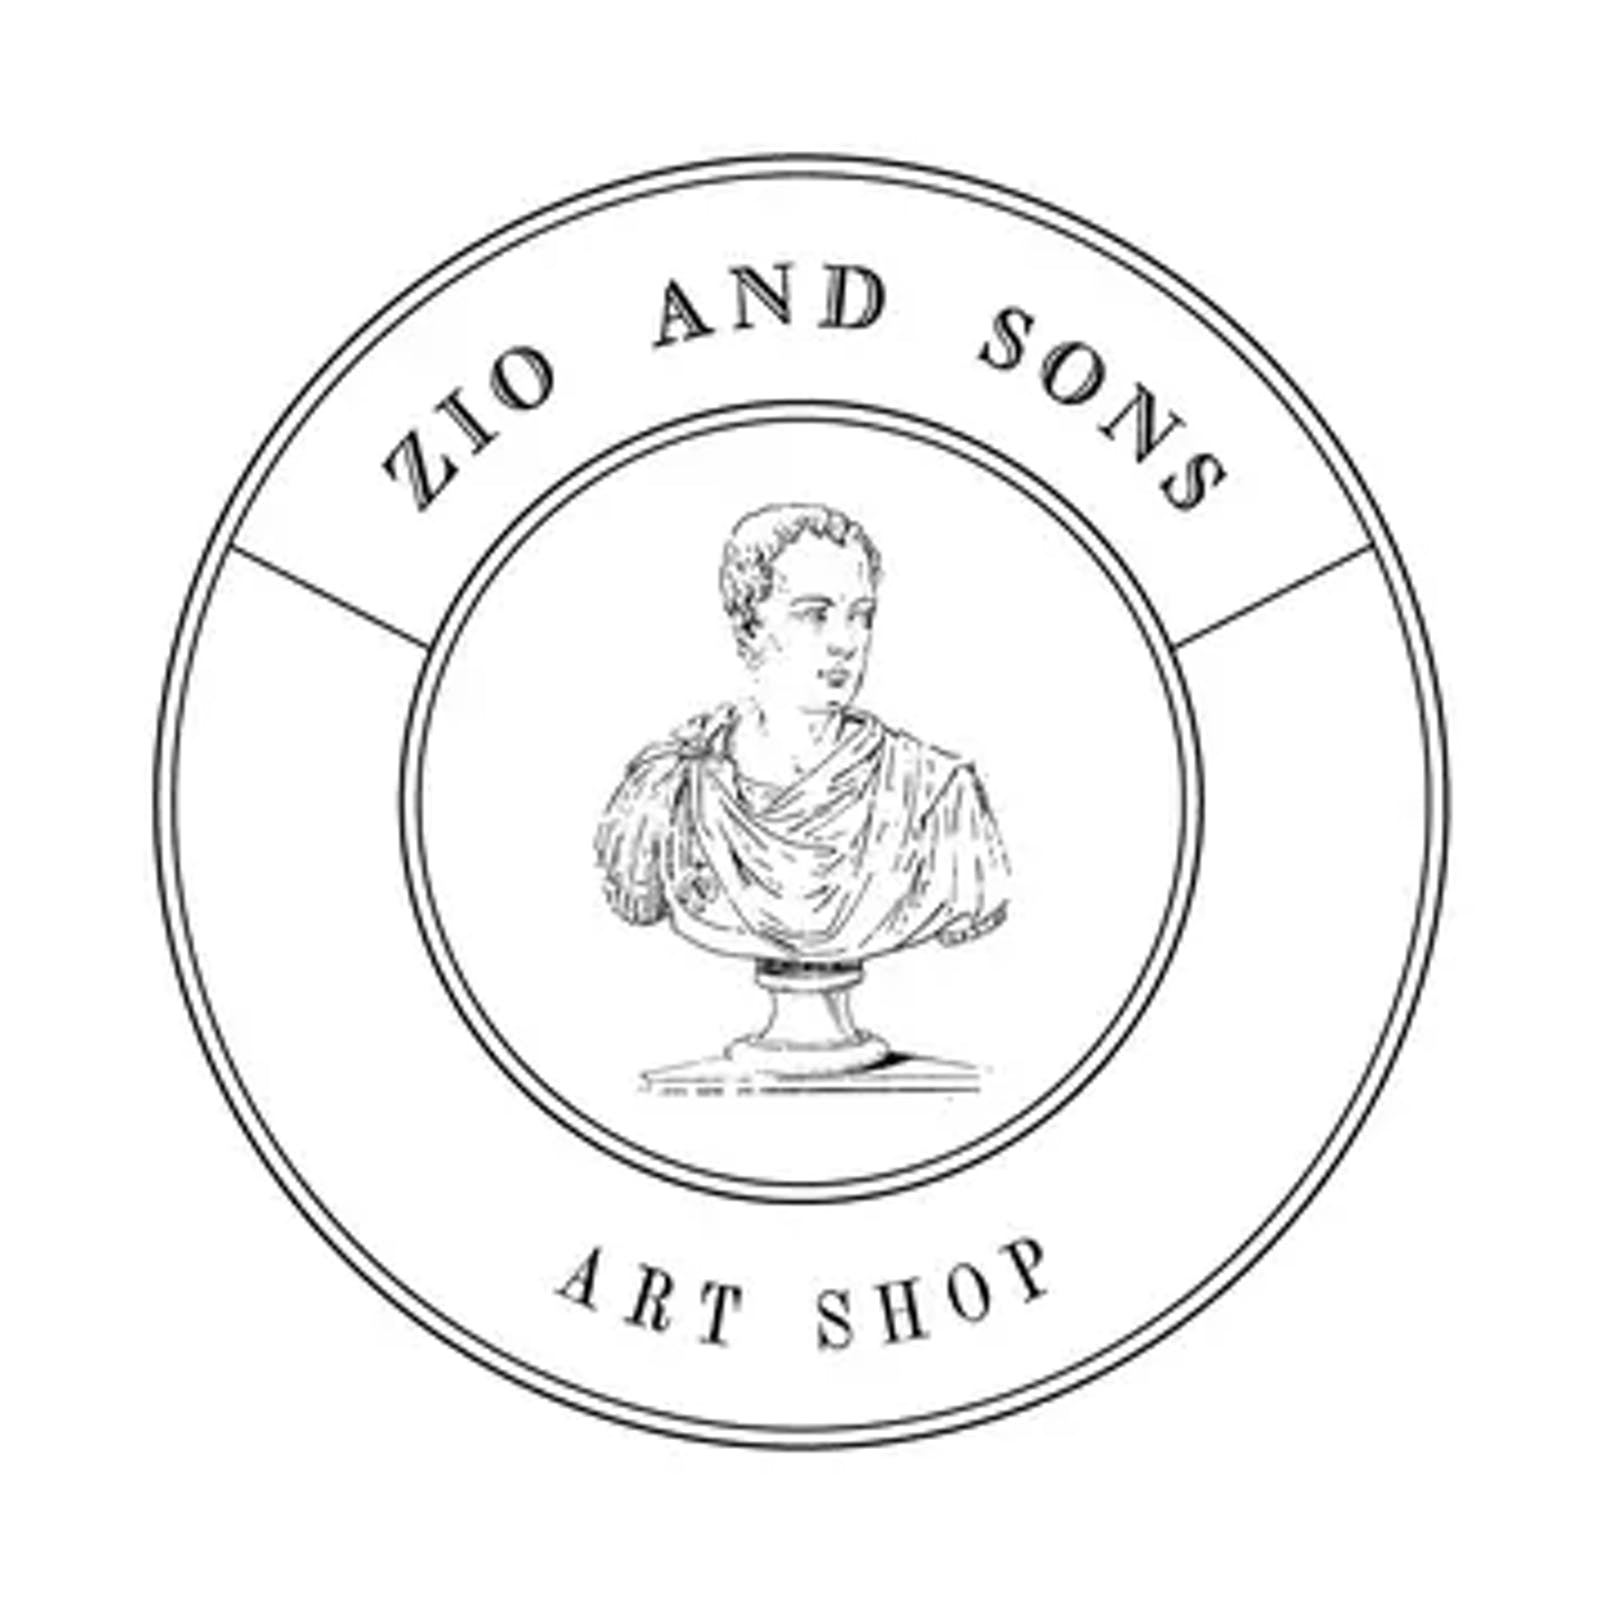 Zio and Sons Art Shop